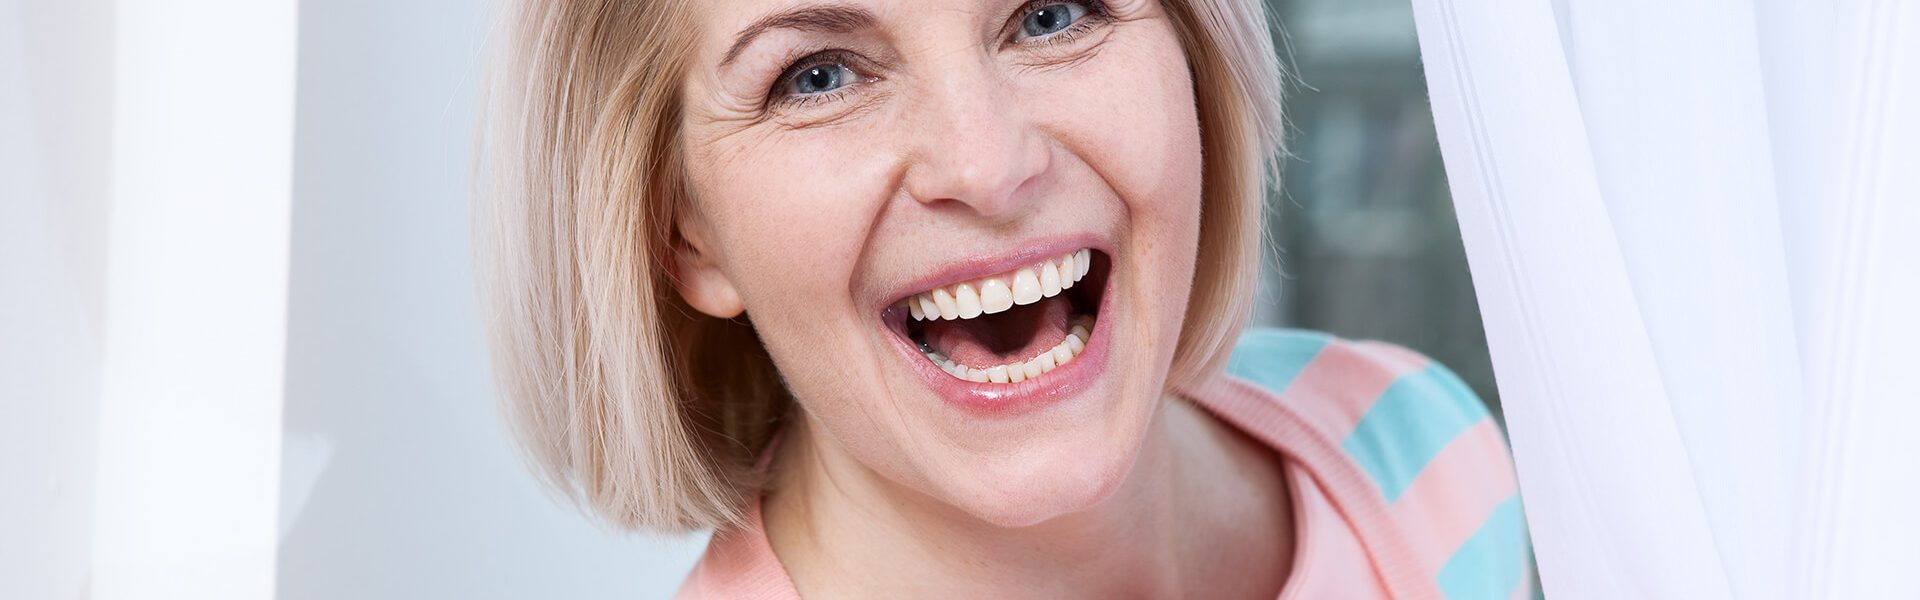 A Patient's Guide to Basic Restorative Dentistry